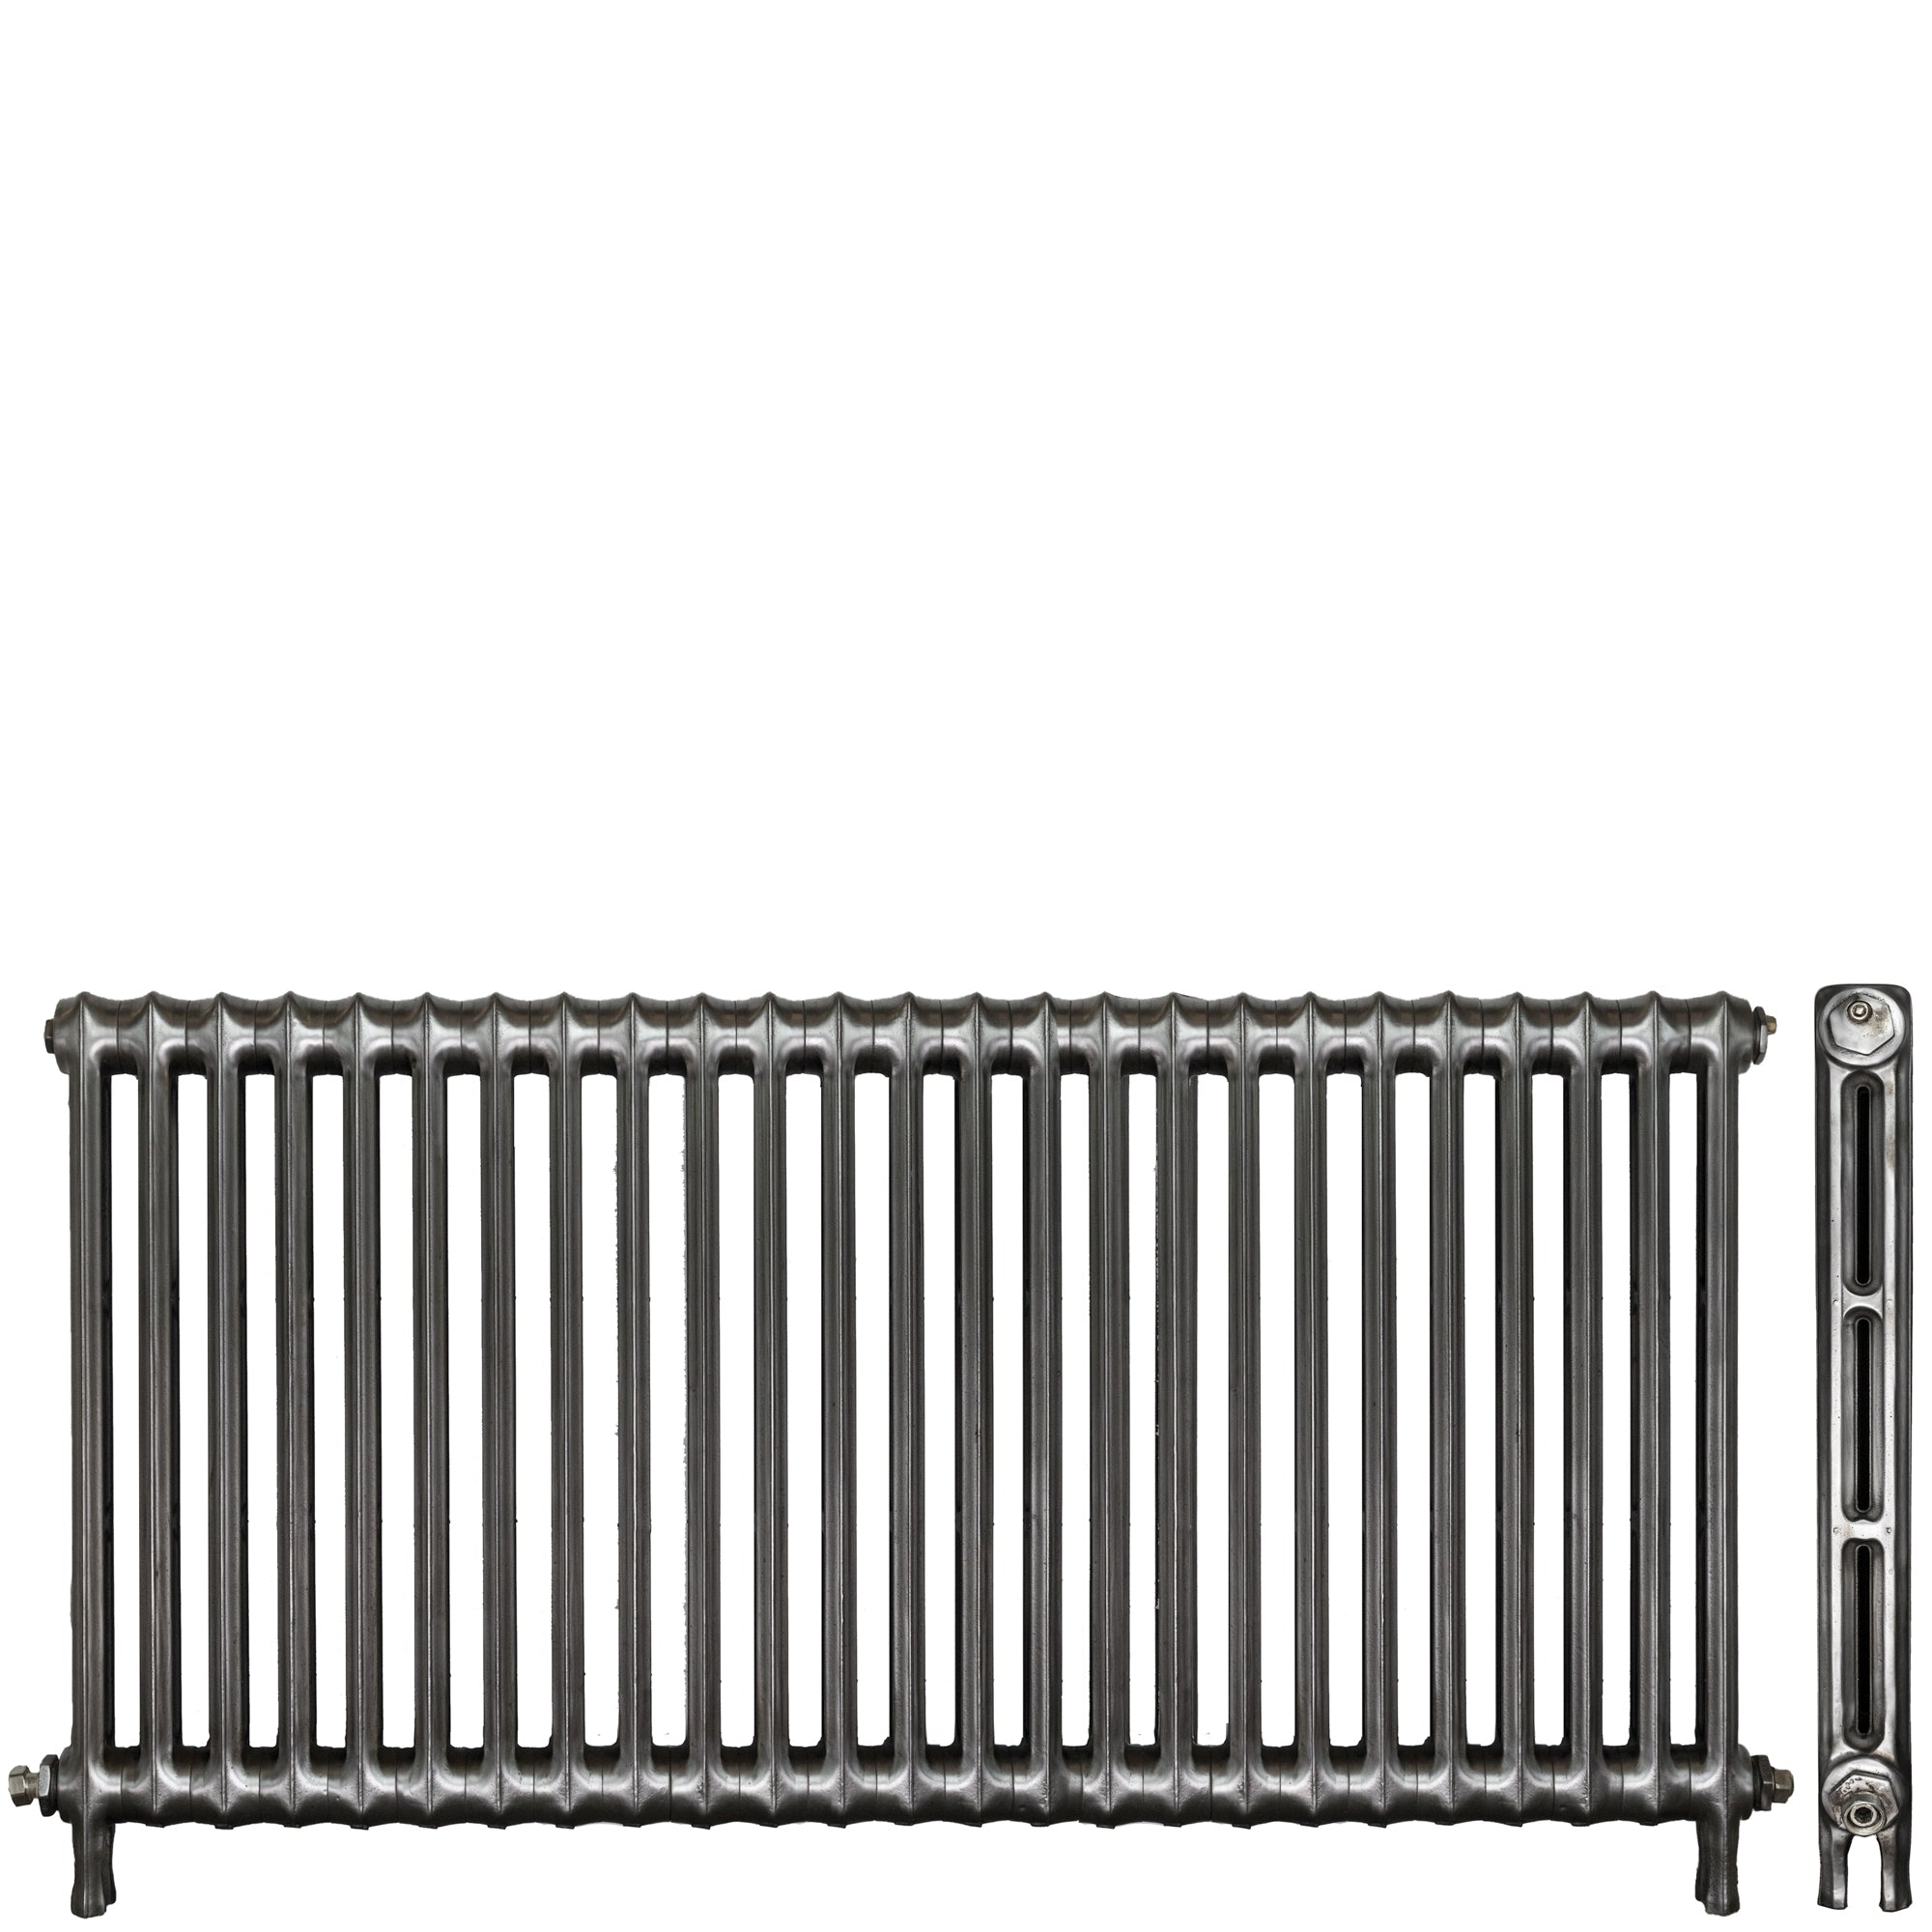 Antique Hand Polished Cast Iron Two Column Radiator 25 Sections | The Architectural Forum